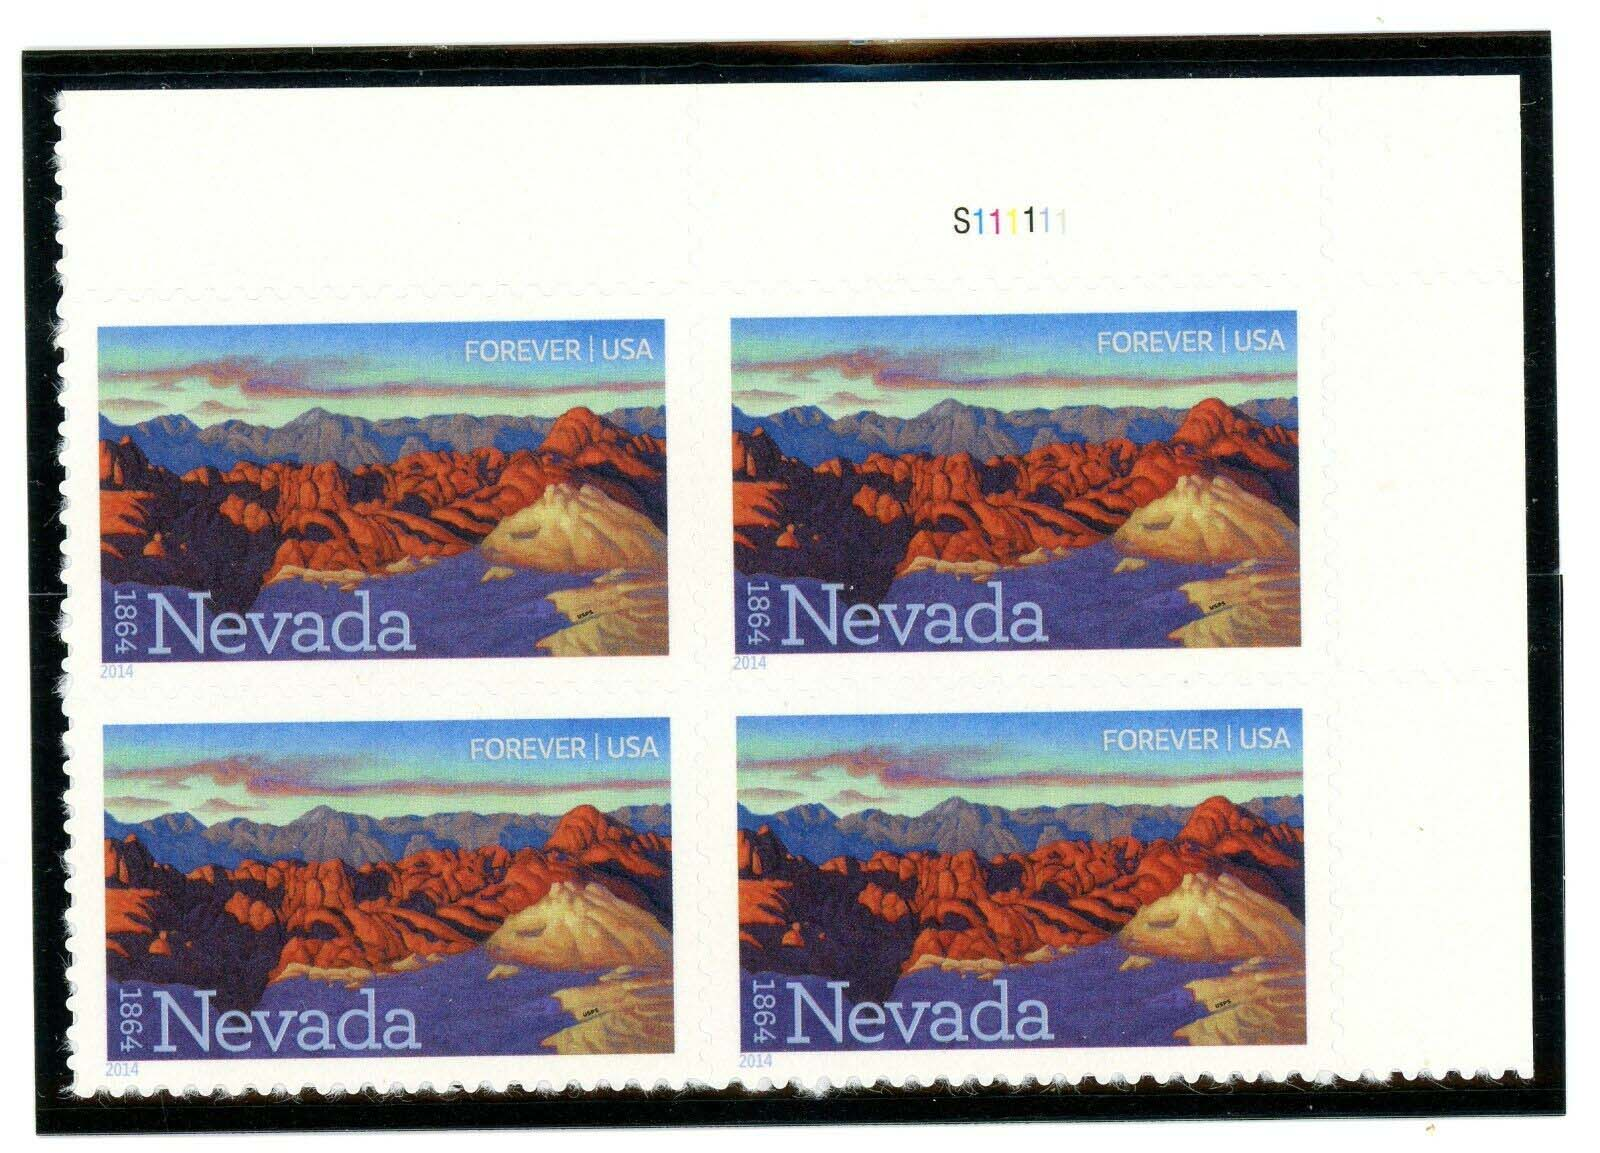 Scott #4907, Forever Plate Block of 4, Nevada, Fire Canyon